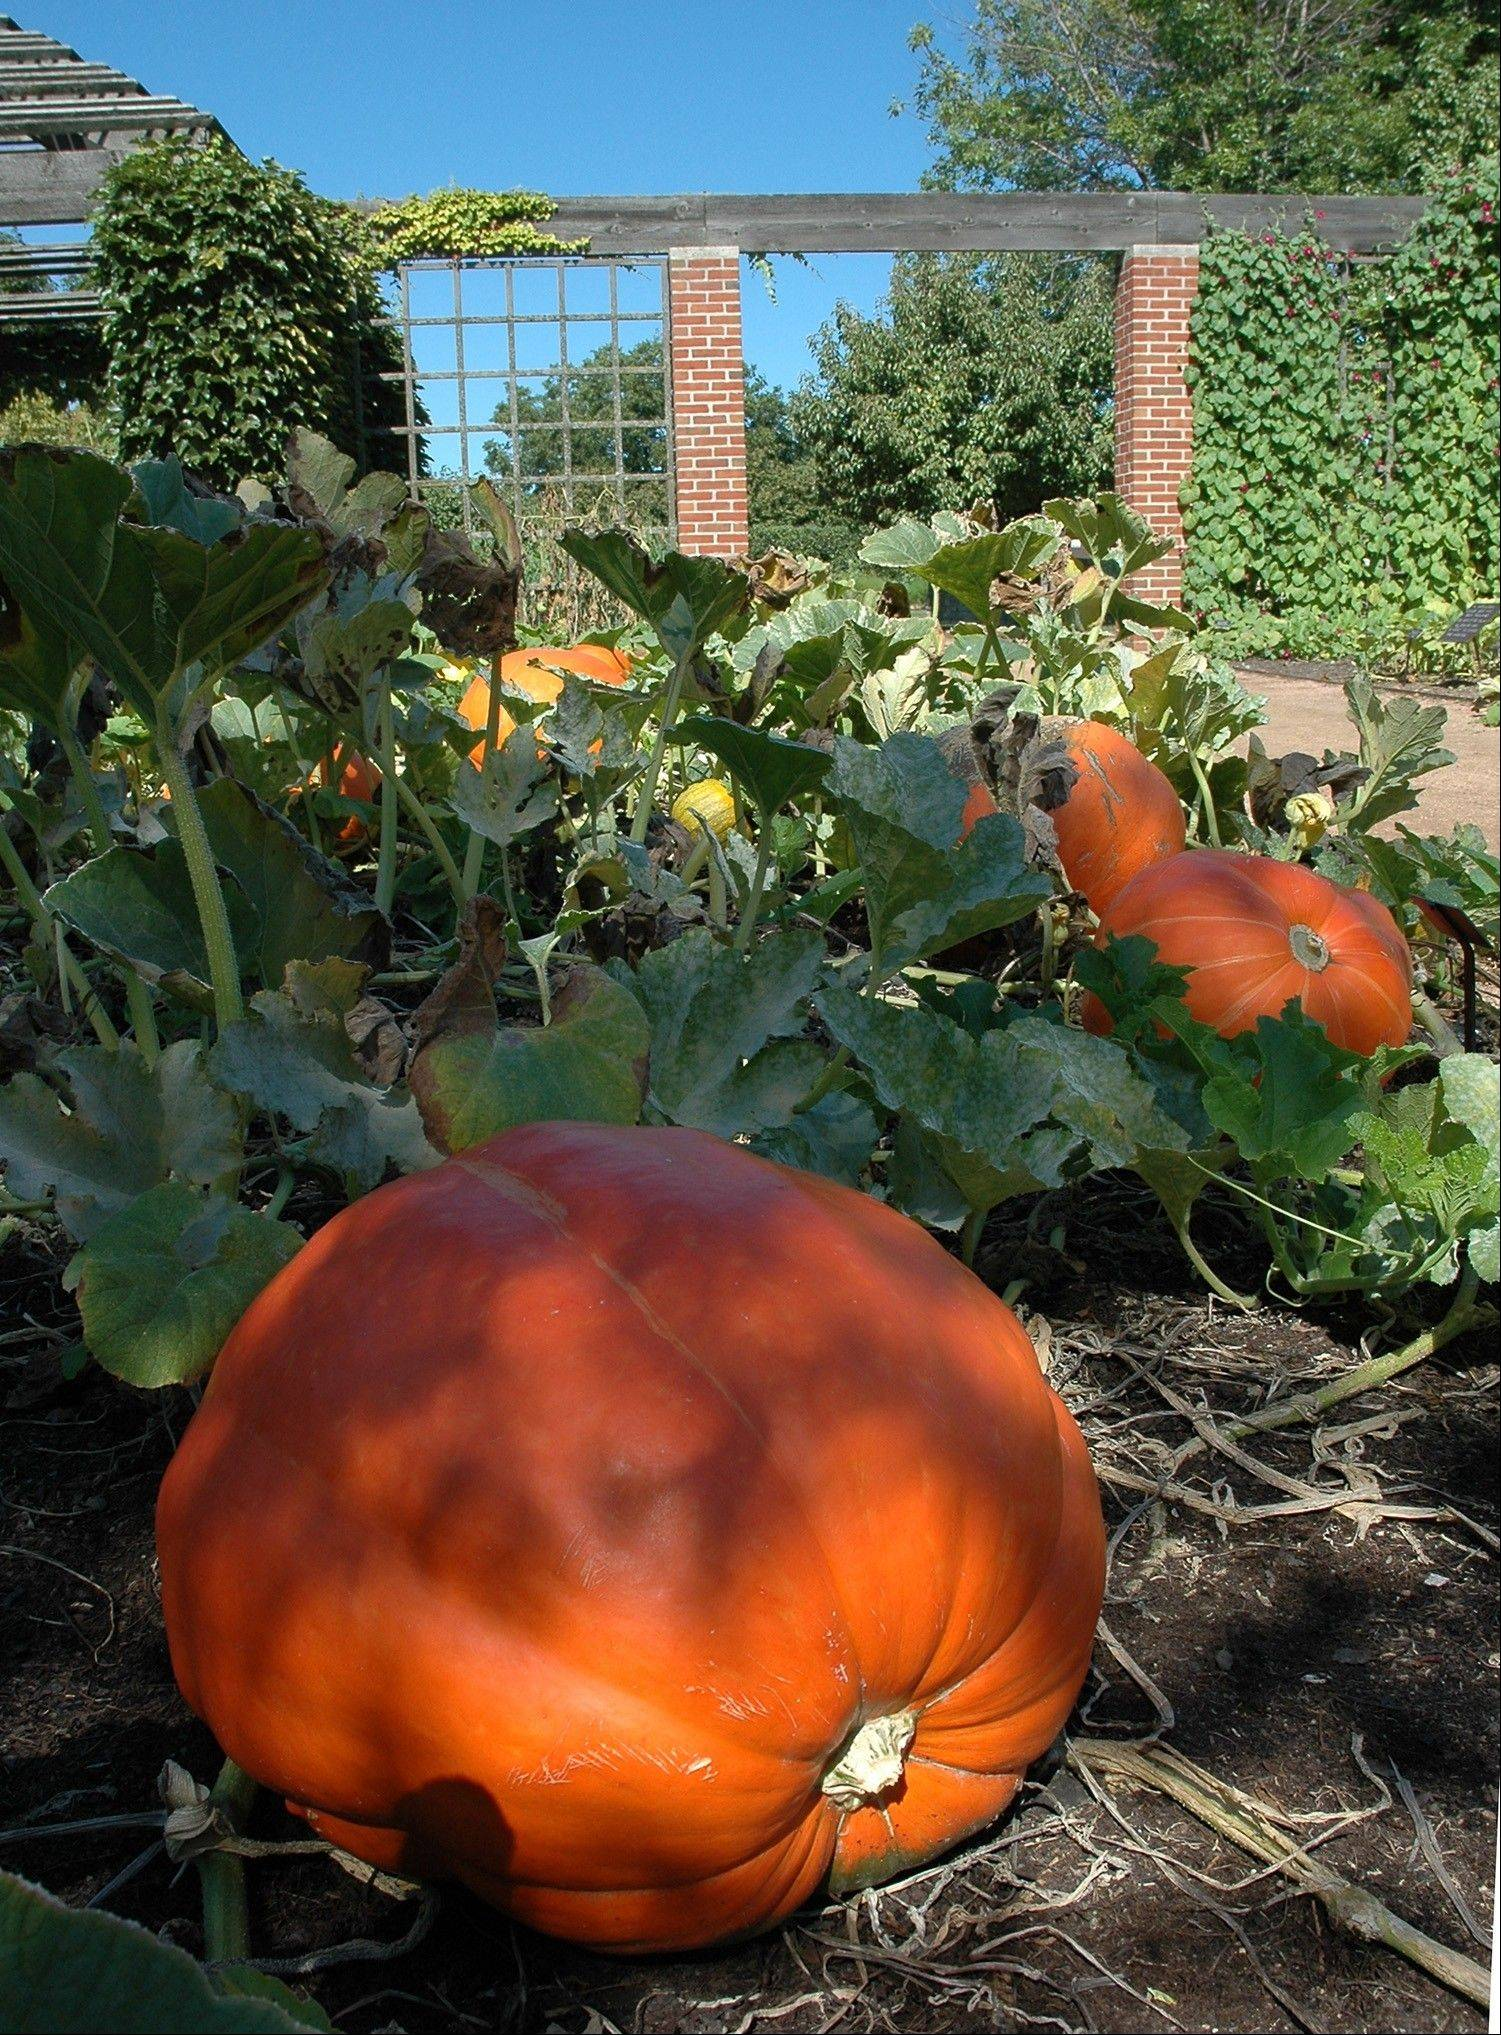 Pumpkins need to be left on the vine as long as possible to reach their maximum size.